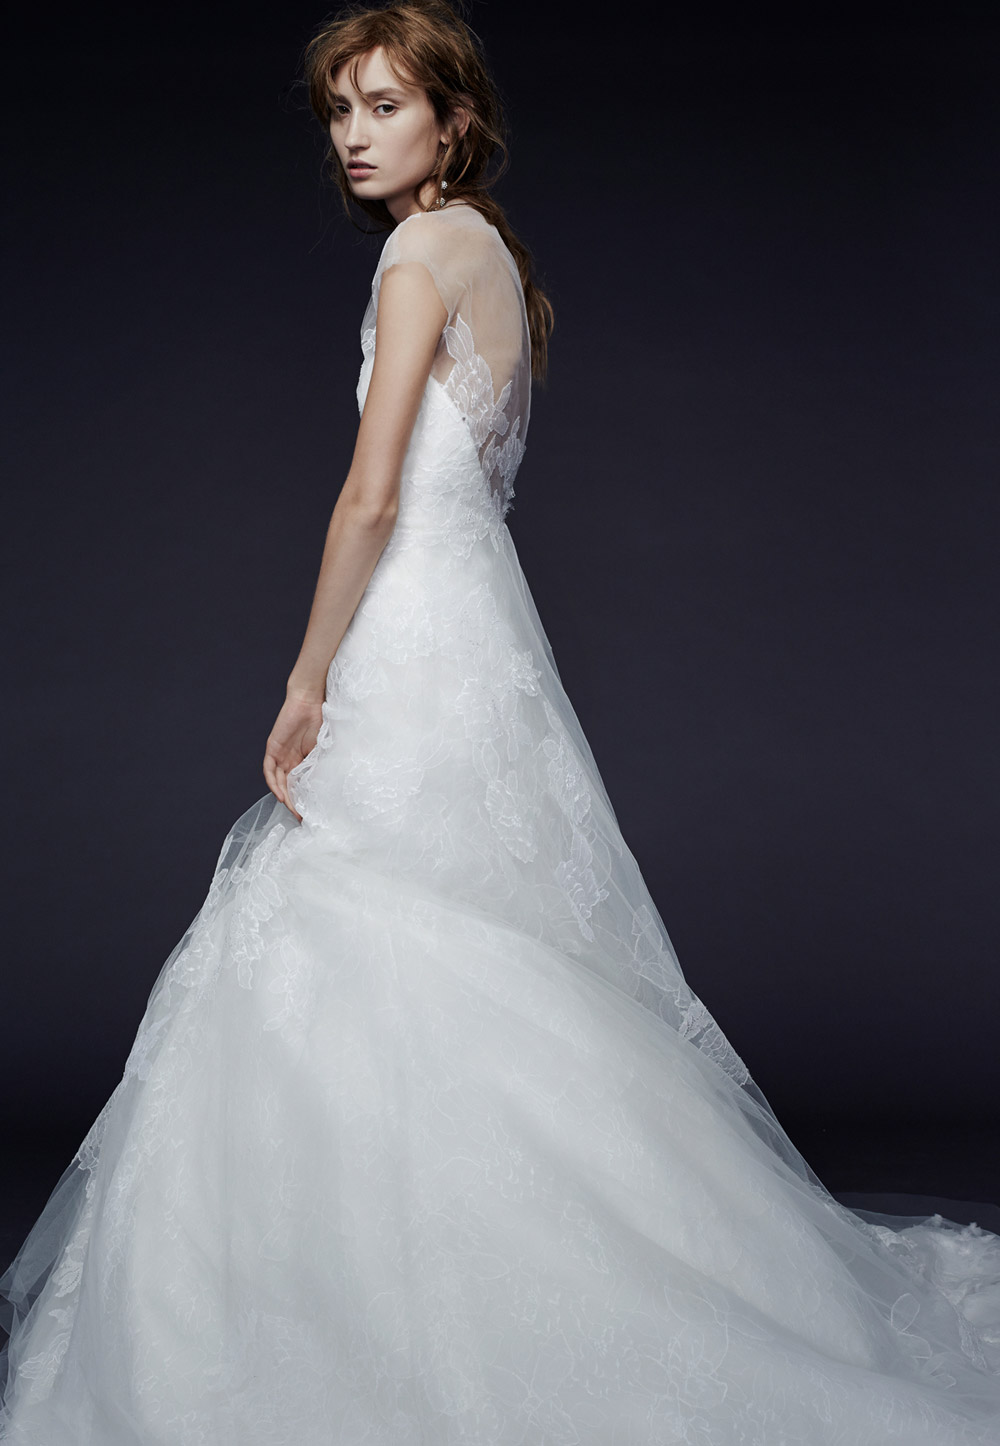 Pandora – Vera Wang Fall 2015 Collection. www.theweddingnotebook.com